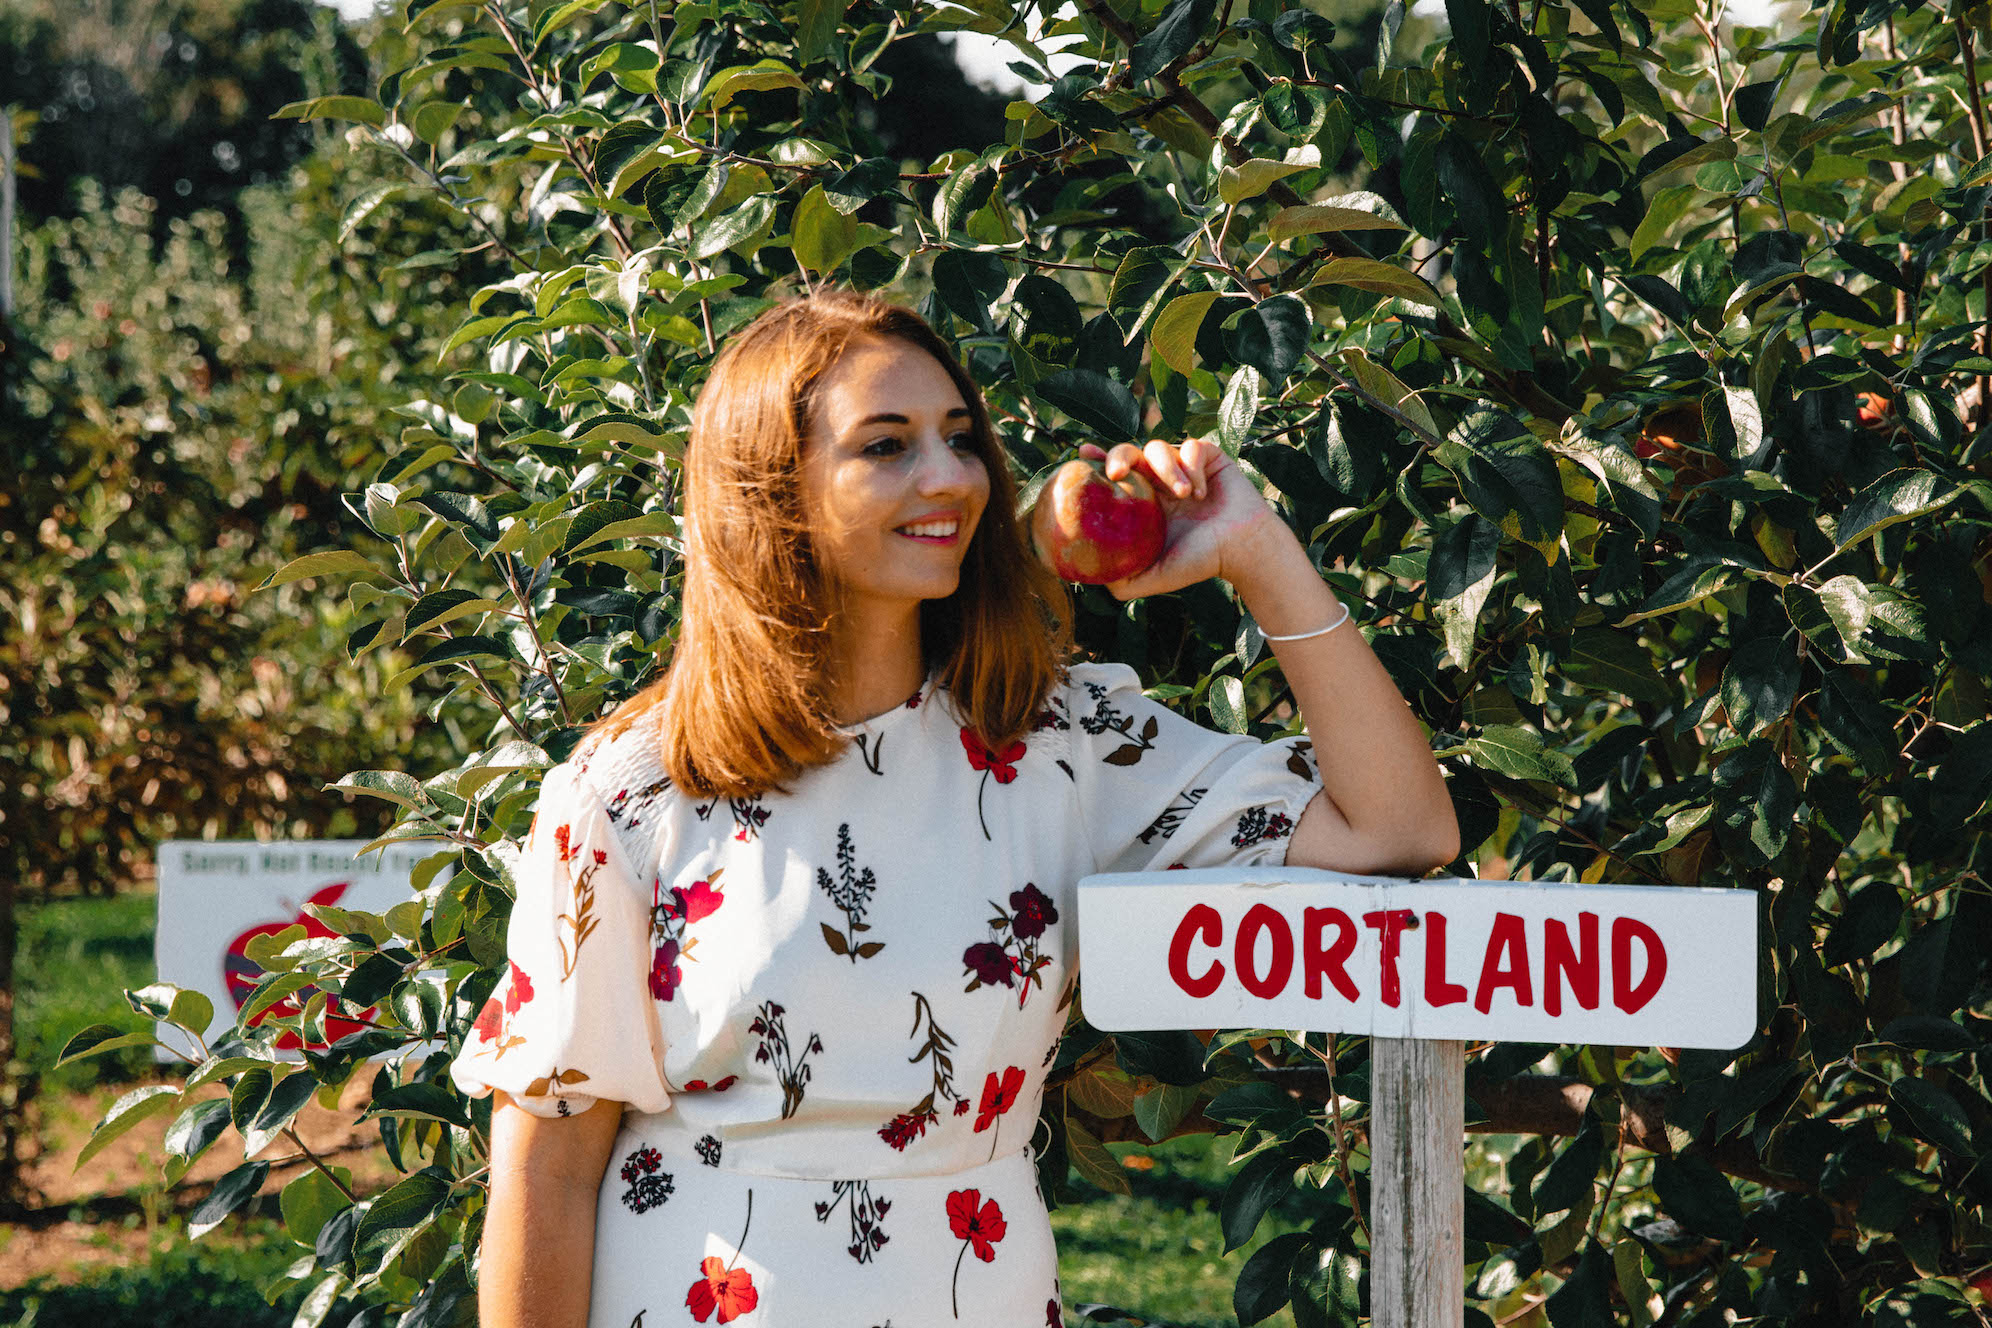 Apple-Picking-in-Fairfield-County-Connecticut-The-Coastal-Confidence-by-Aubrey-Yandow-1641.jpg